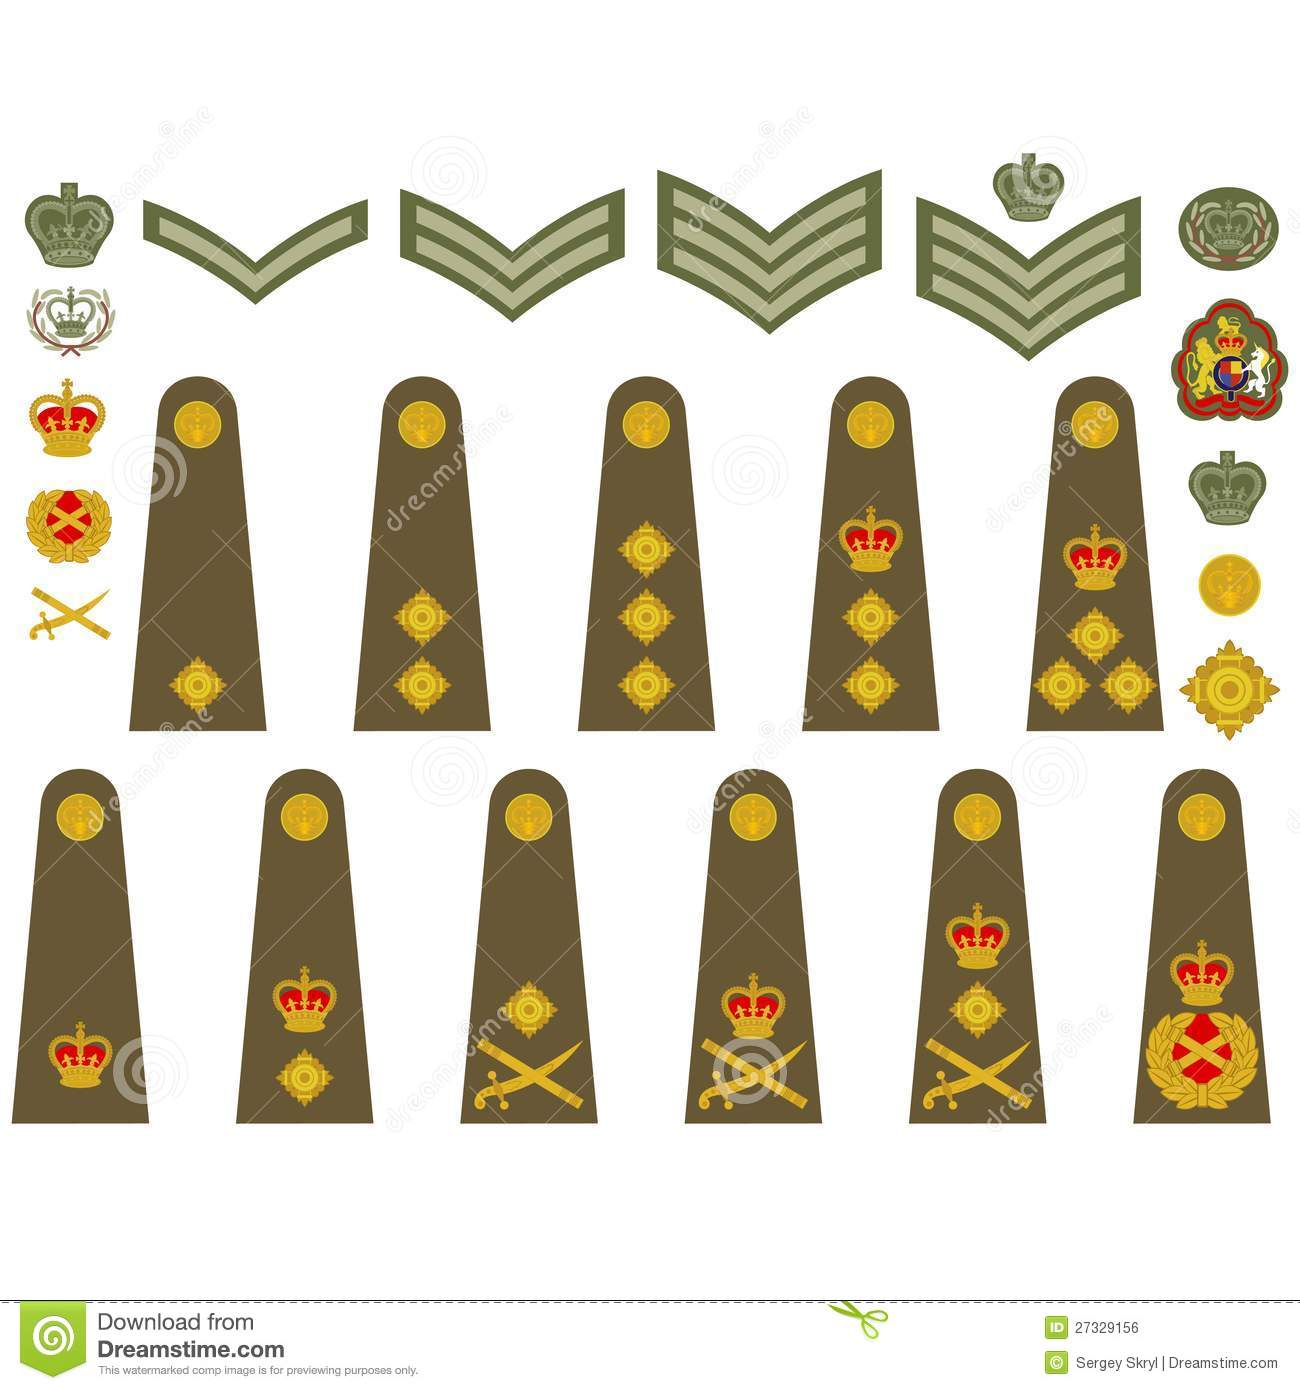 British Army Insignia Royalty Free Stock Image - Image: 27329156